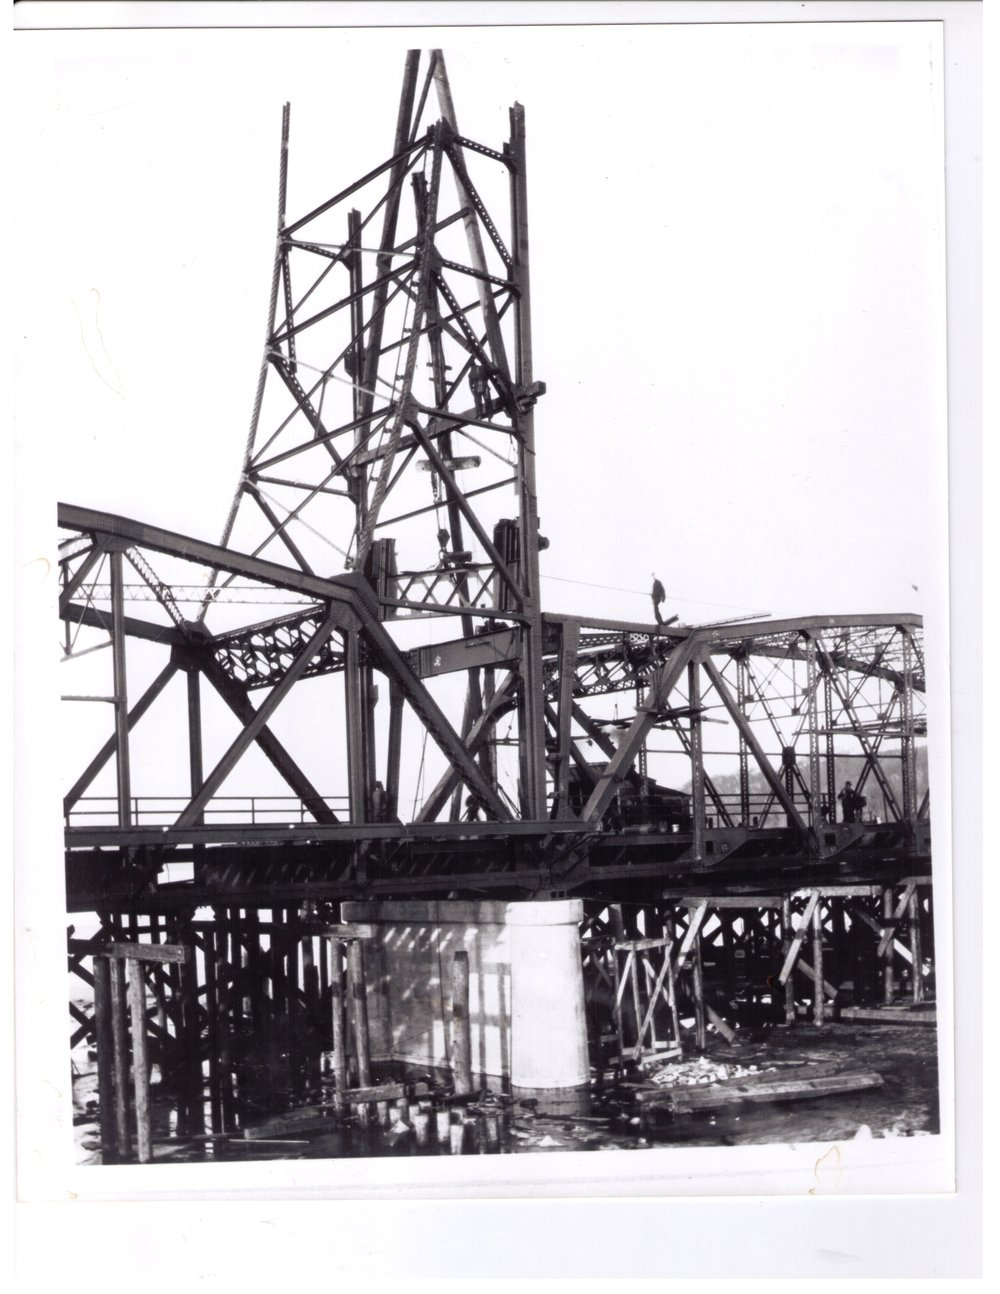 Lift Bridge Under Construction in 1931. Photo credit, Mr. John Runk, courtesy of Stillwater Public Library.